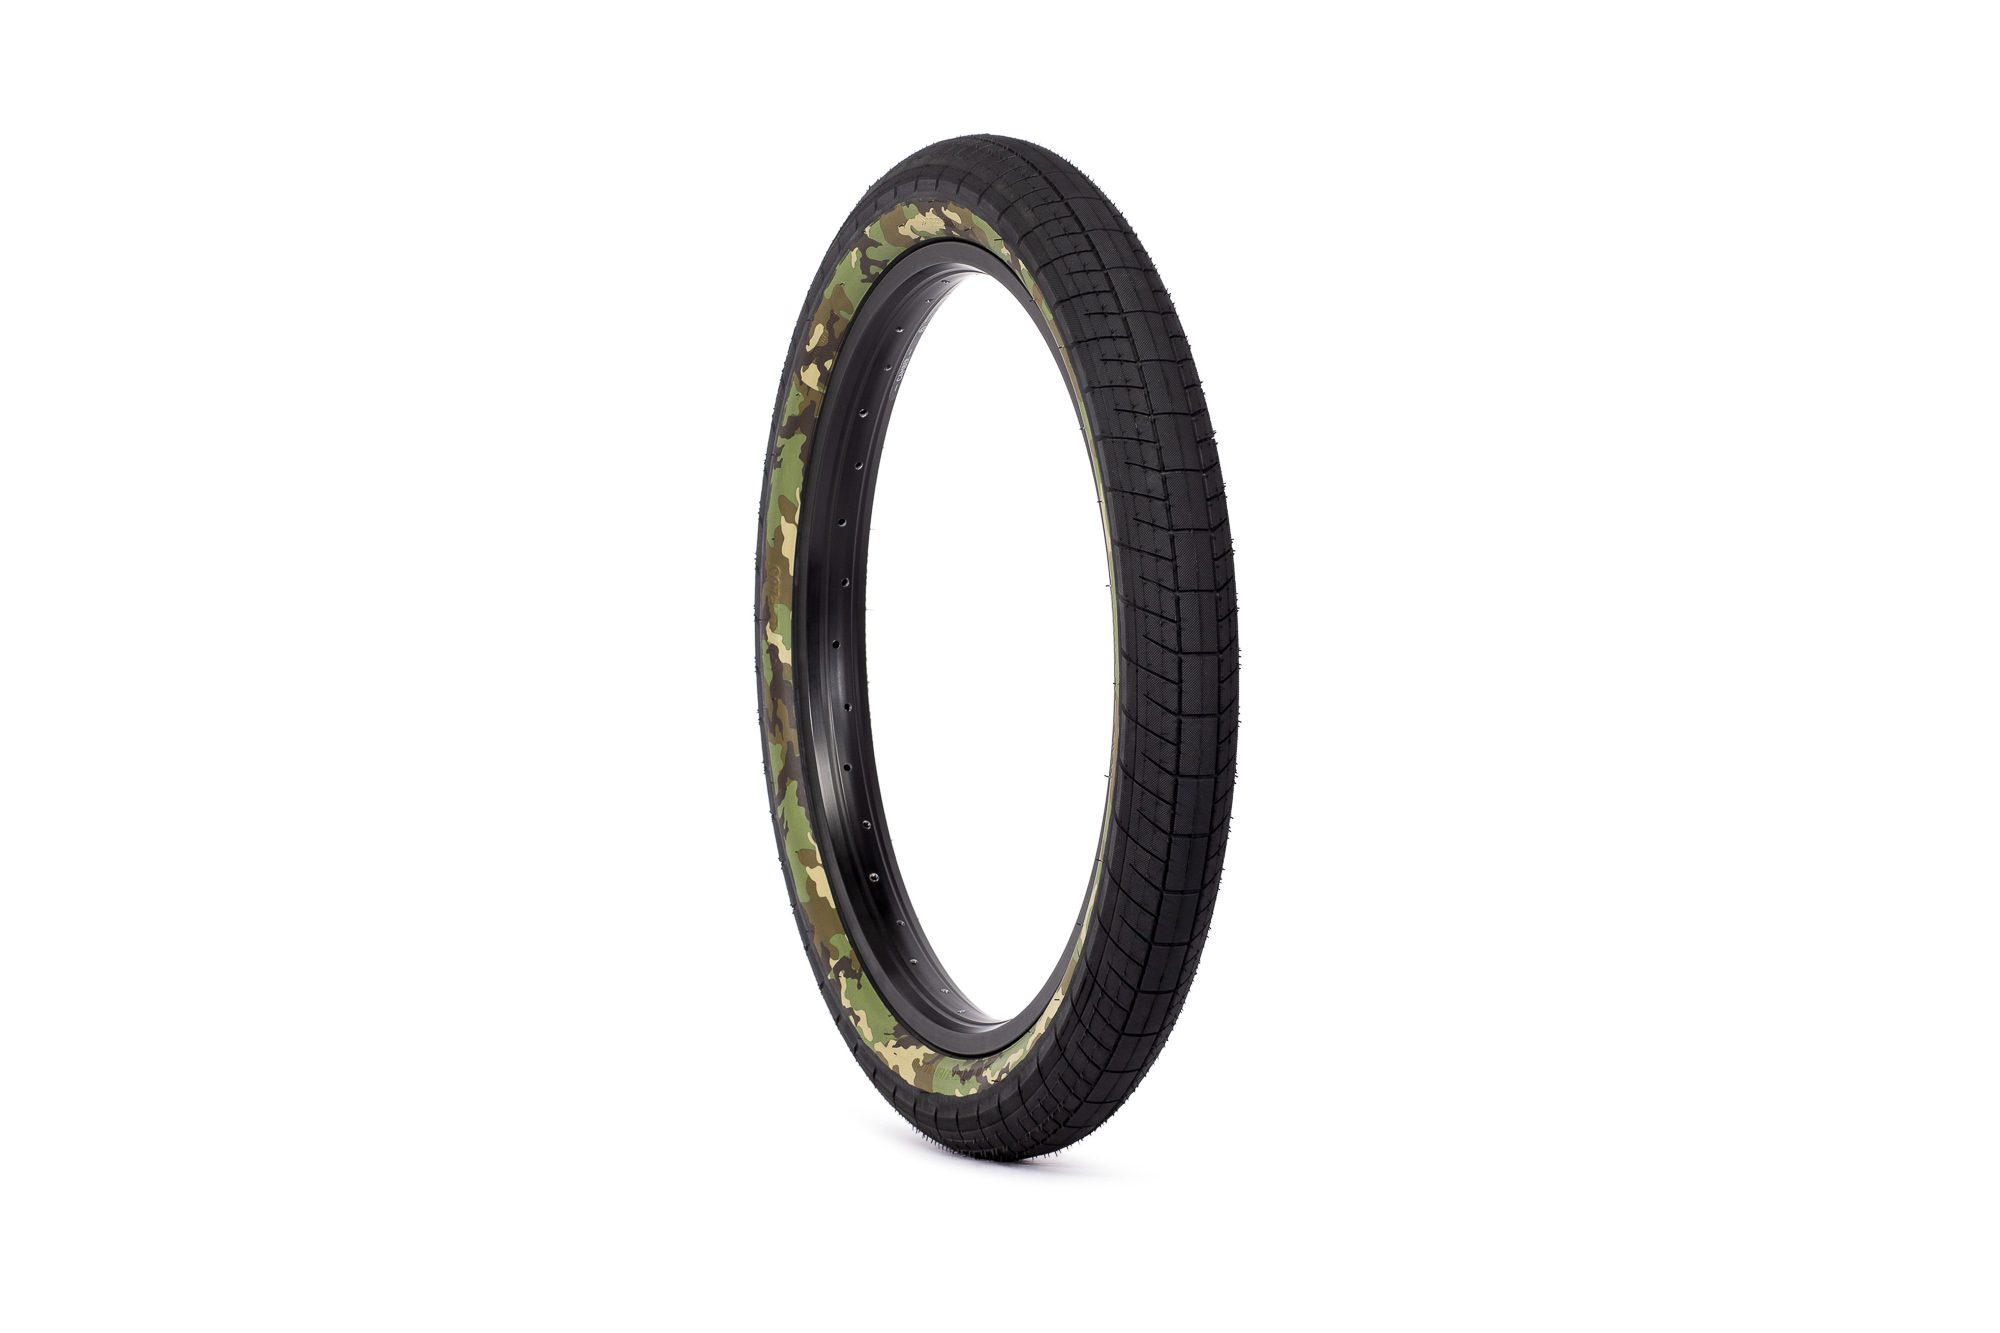 SaltPlus_Sting_tire_black_camo-02